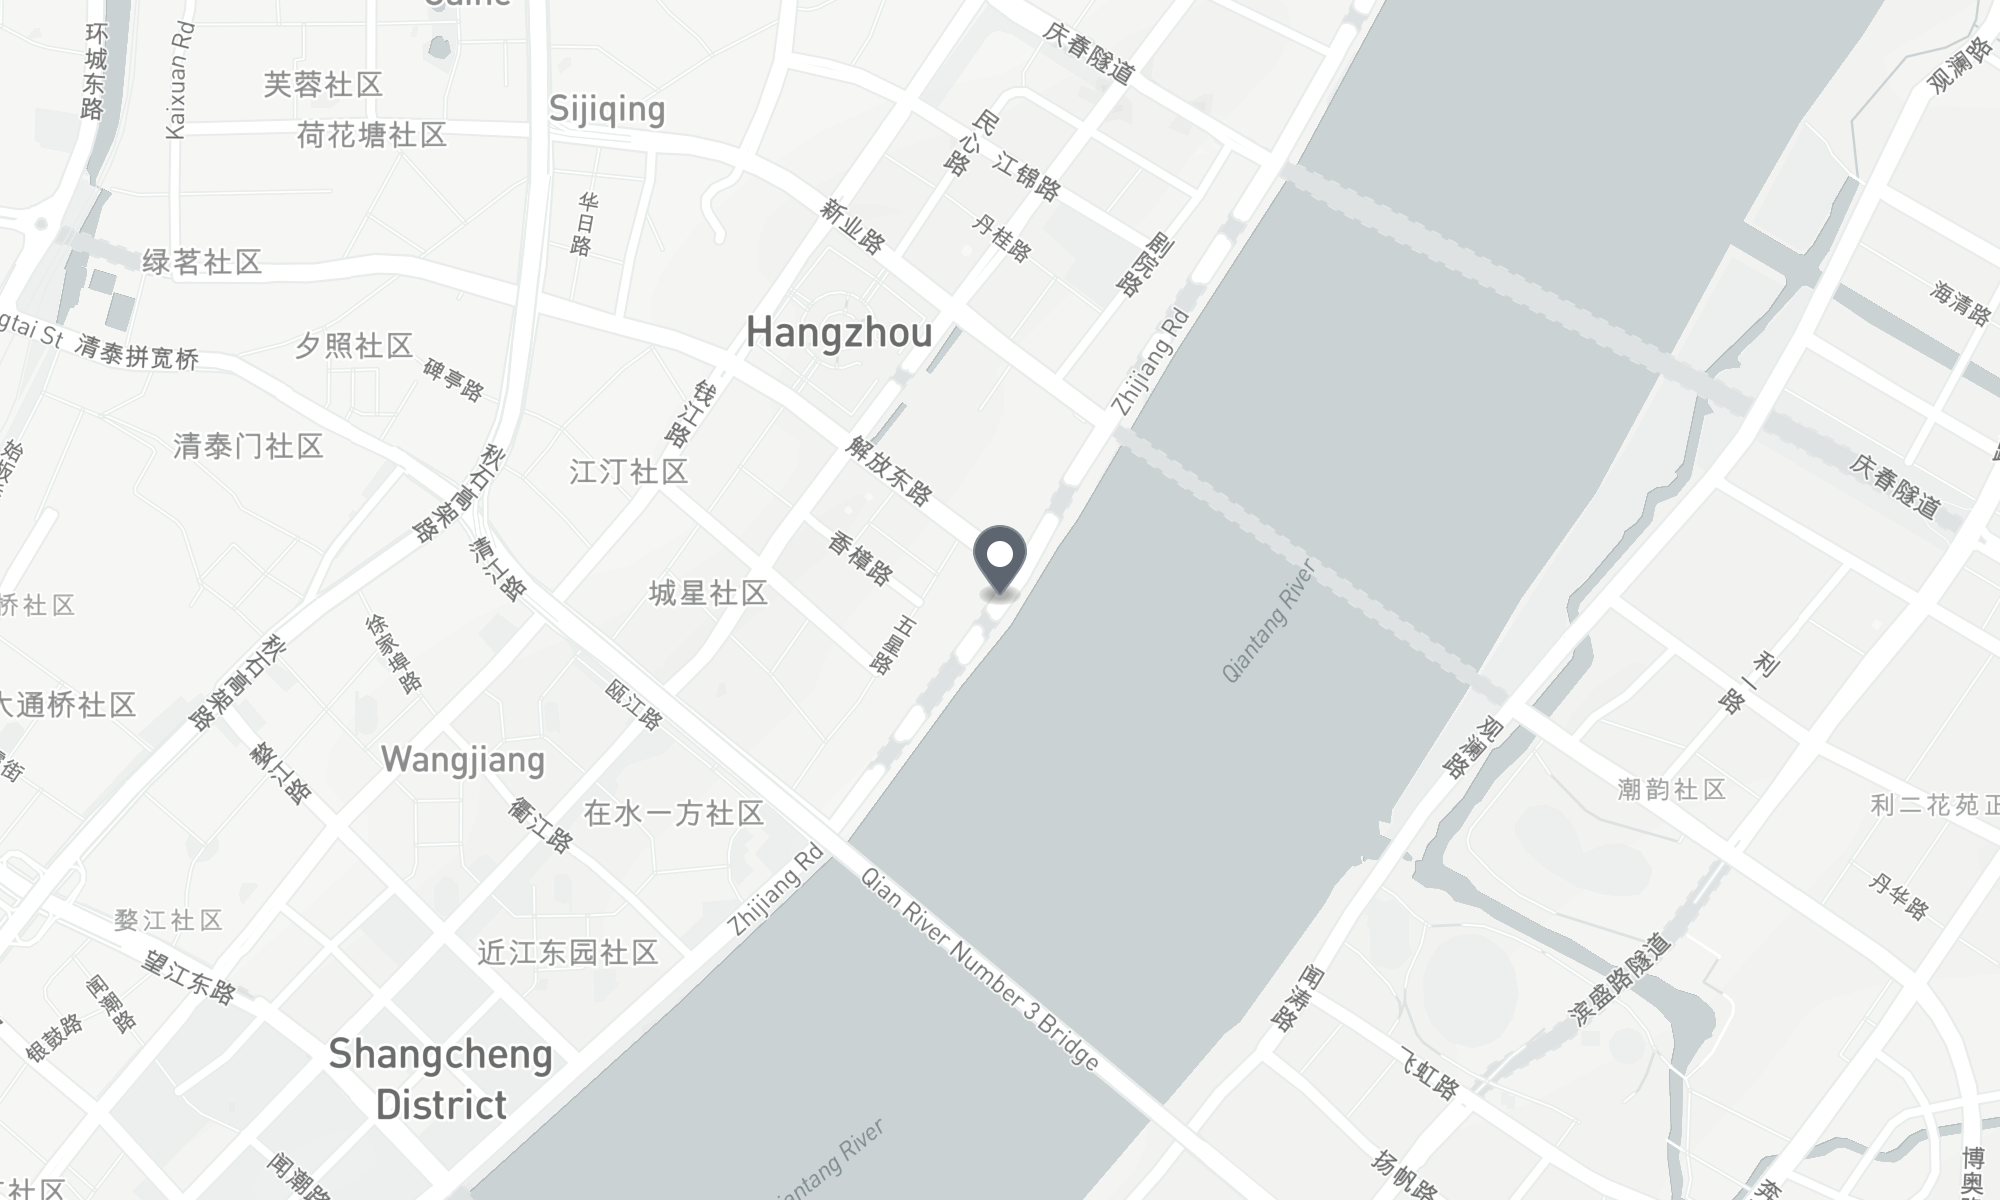 static Mapbox map of the Hangzhou, China CPMG office